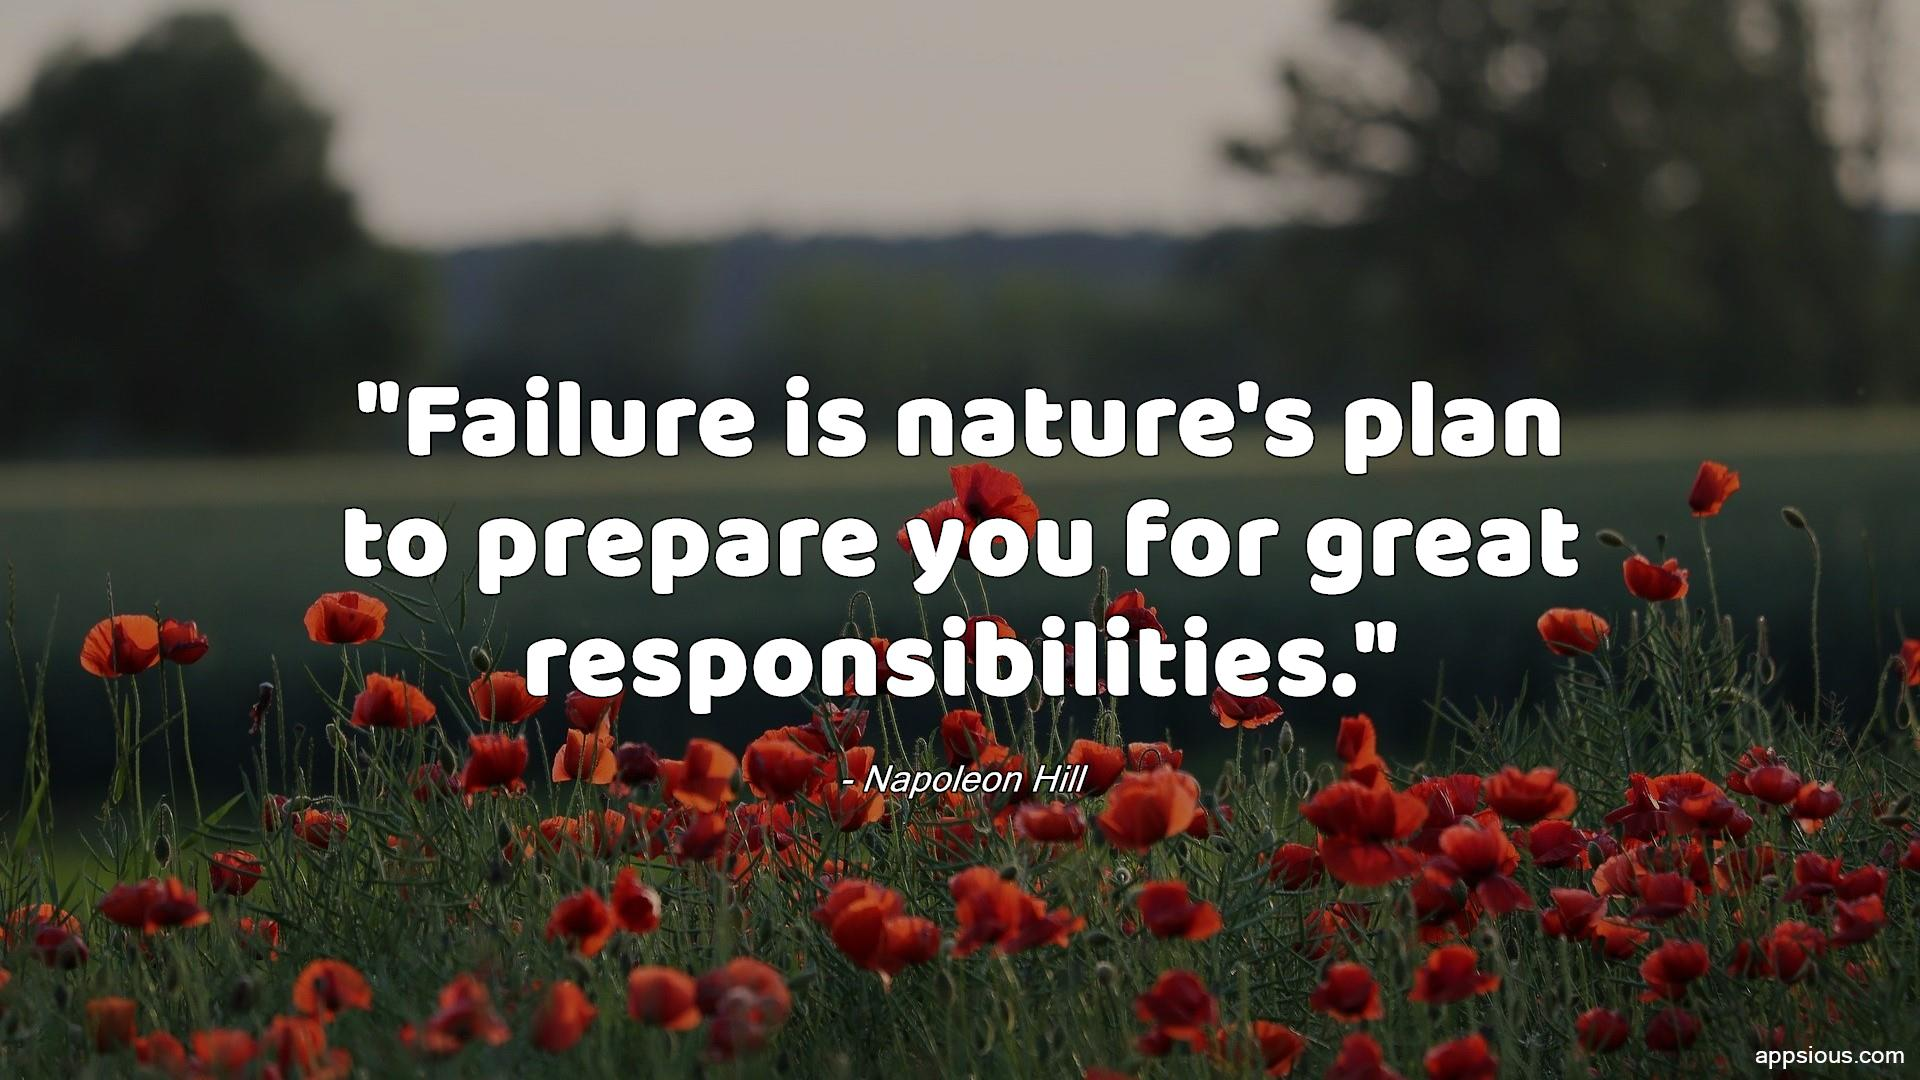 Failure is nature's plan to prepare you for great responsibilities.